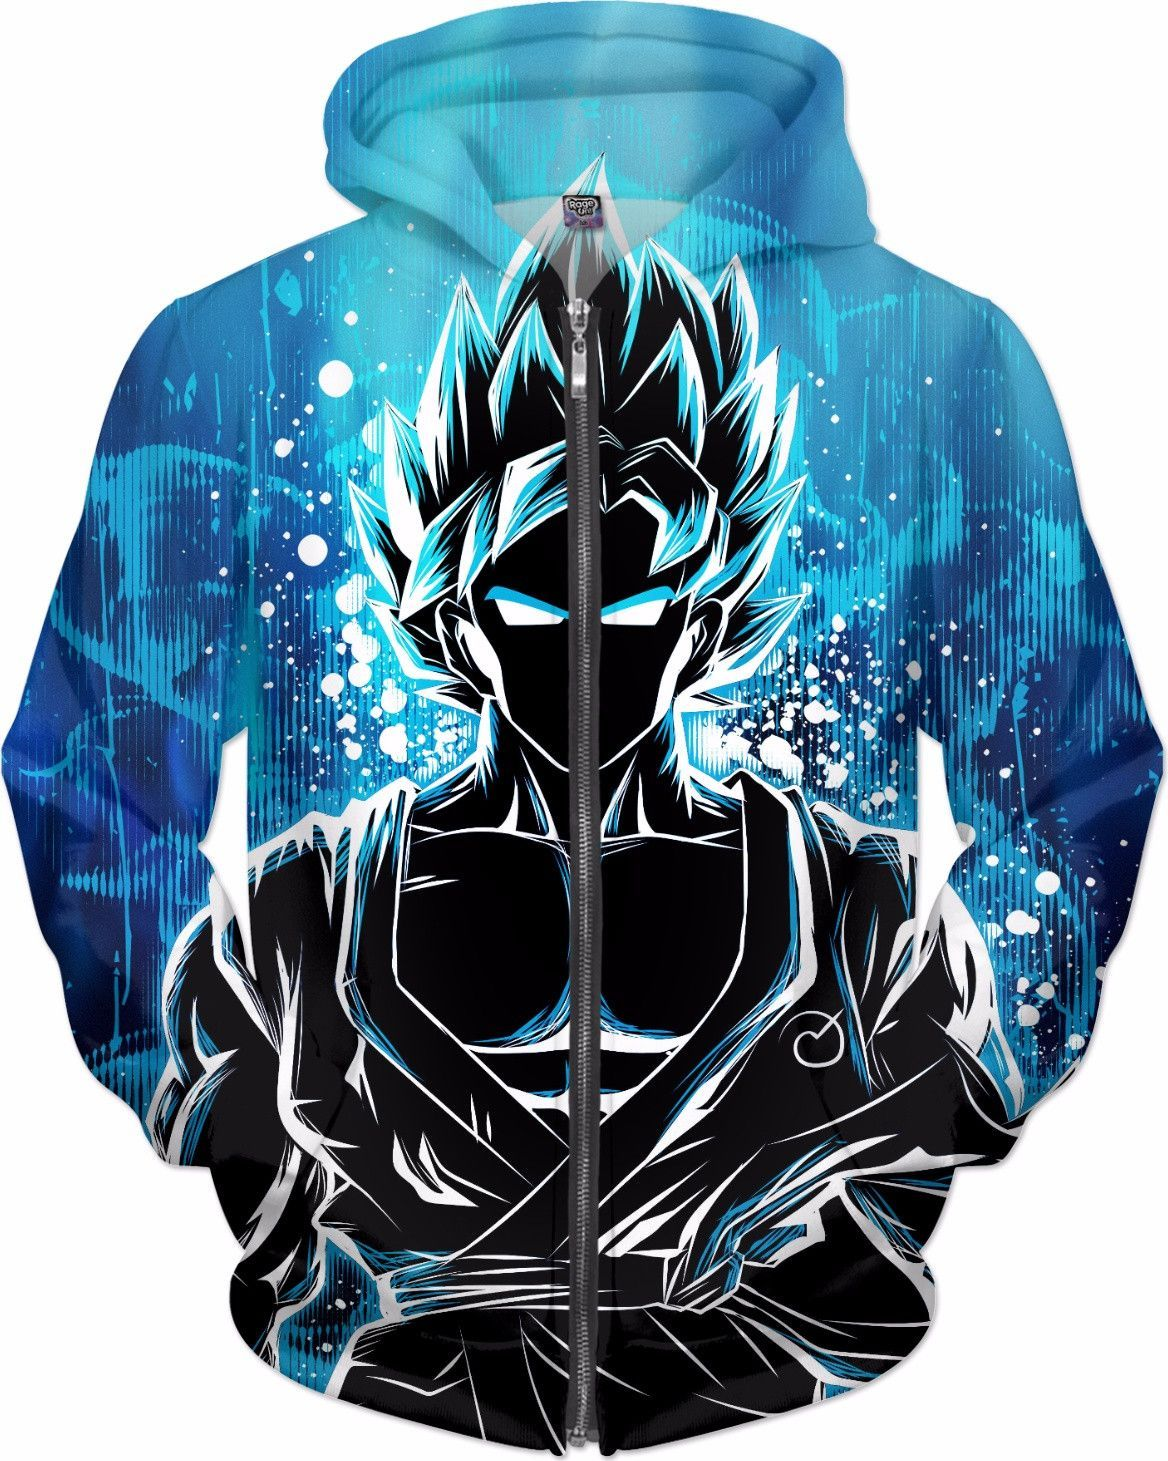 Goku Super Saiyan God Zip Up Hoodie